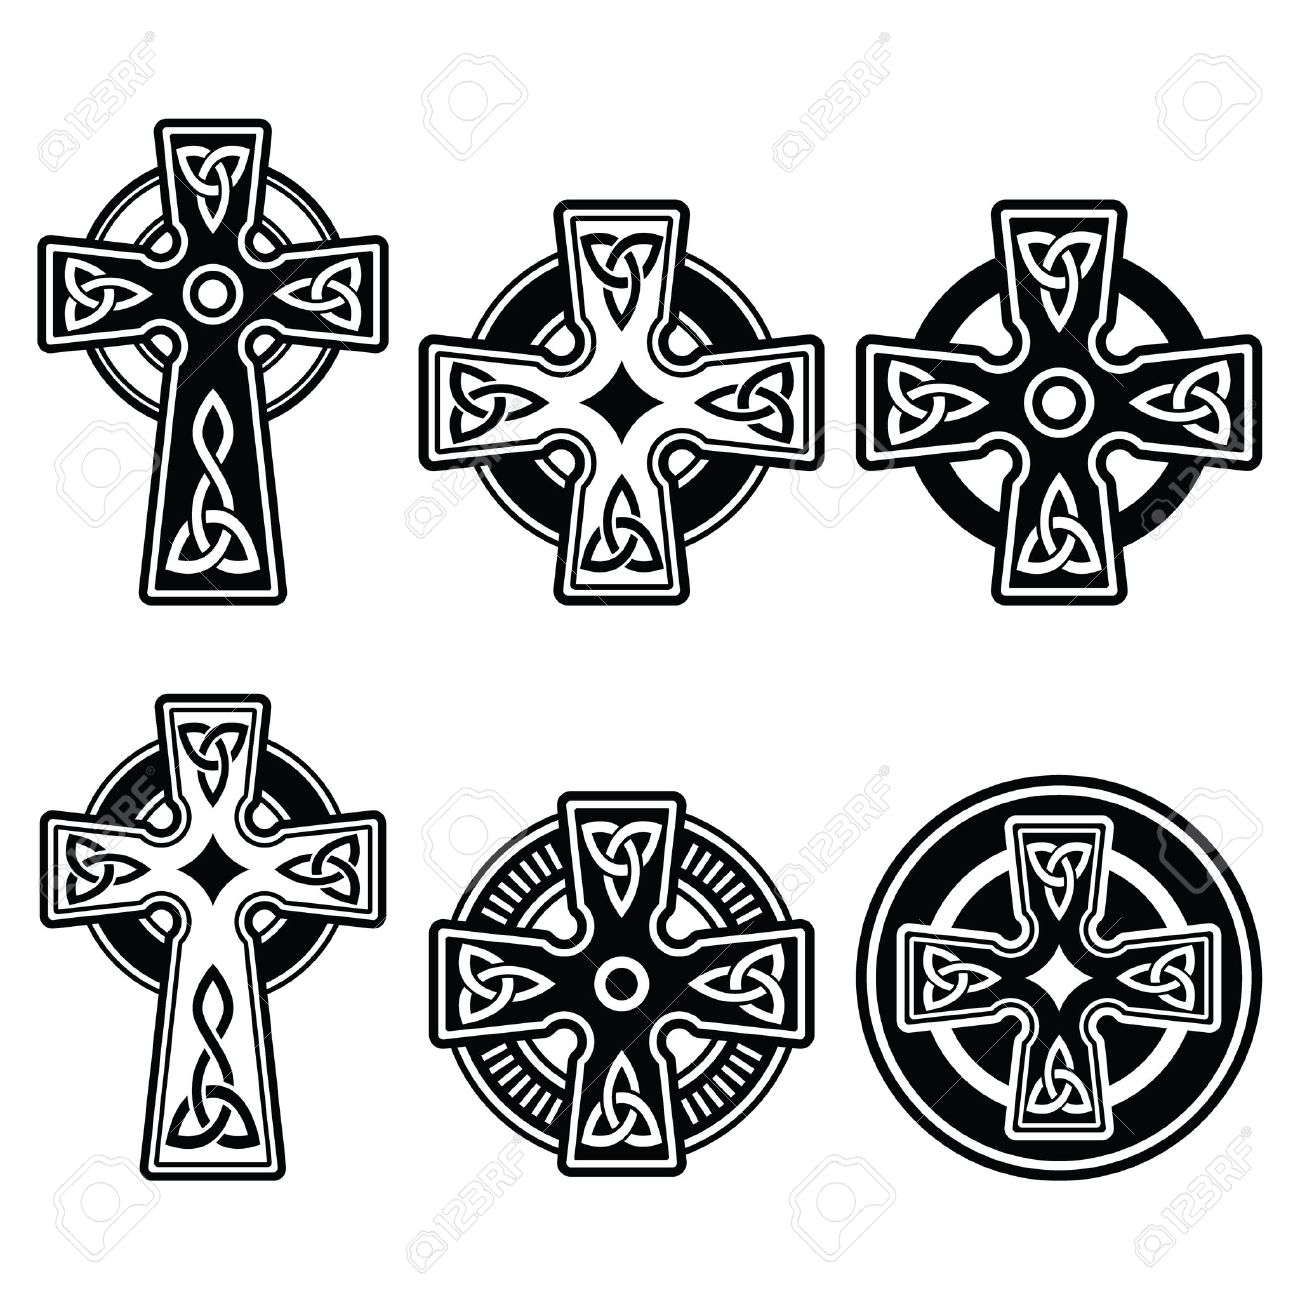 Irish scottish celtic cross on white vector sign royalty free irish scottish celtic cross on white vector sign stock vector 33618096 buycottarizona